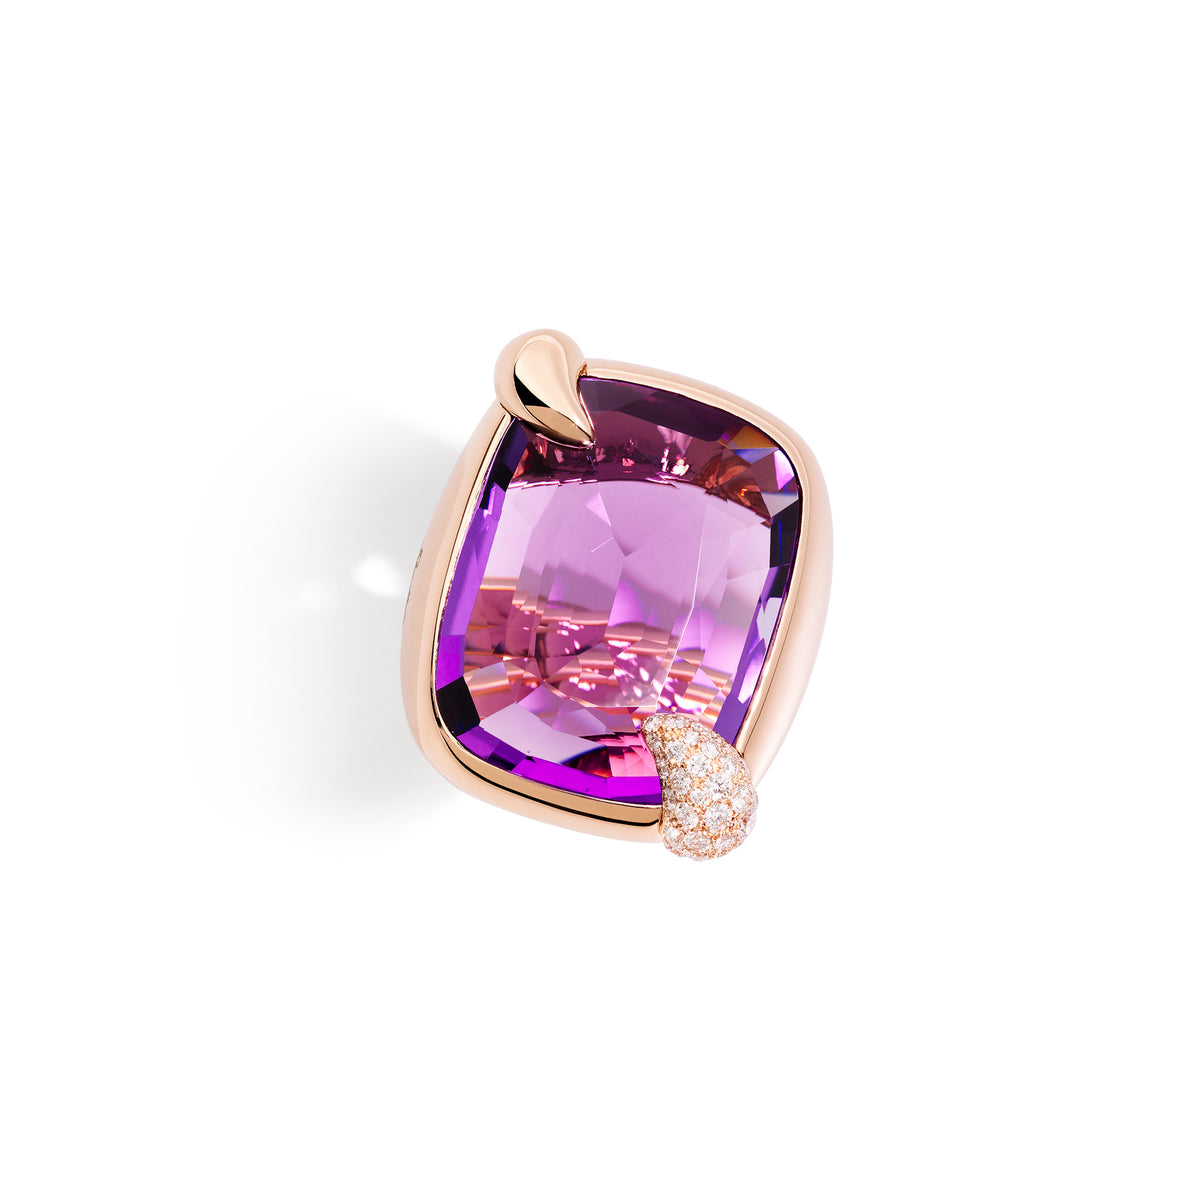 Ritratto Ring in 18k Rose Gold with Amethyst and Diamonds